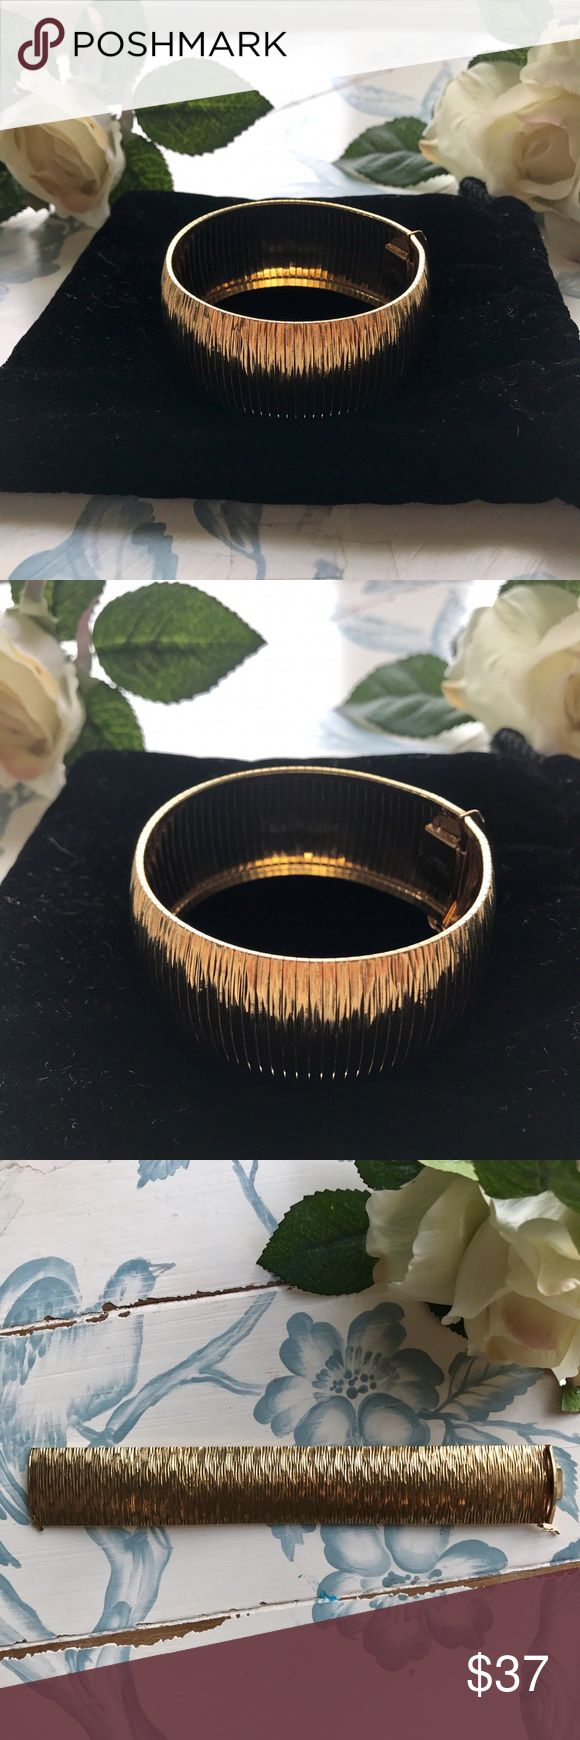 Dyadema Bronze Gold Plated Cuff This Bronze Gold Plated Cuff made in Italy by Dyadema would be a great statement piece for any outfit. The bracelet is flexible with a push pull closure and safety latch. It's only been worn twice and is 7.5 inches long. Dyadema Jewelry Bracelets